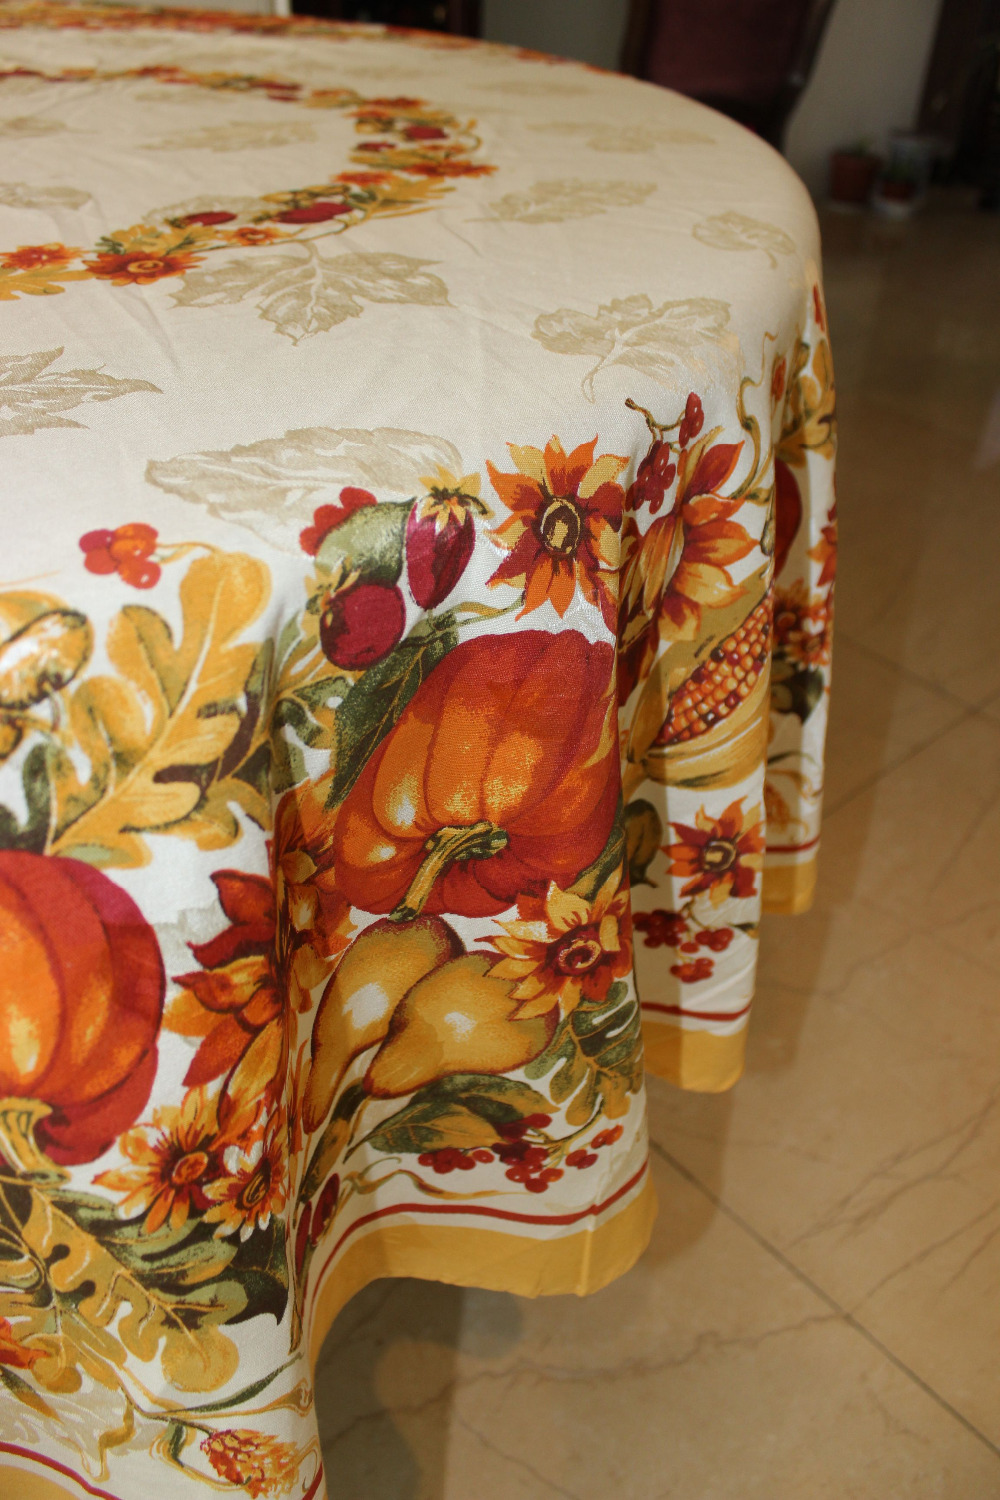 VEZO HOME new arrival printed floral plant pumpkin vines round rectangle square table cloth jacquard tablecloth home table decor(China (Mainland))